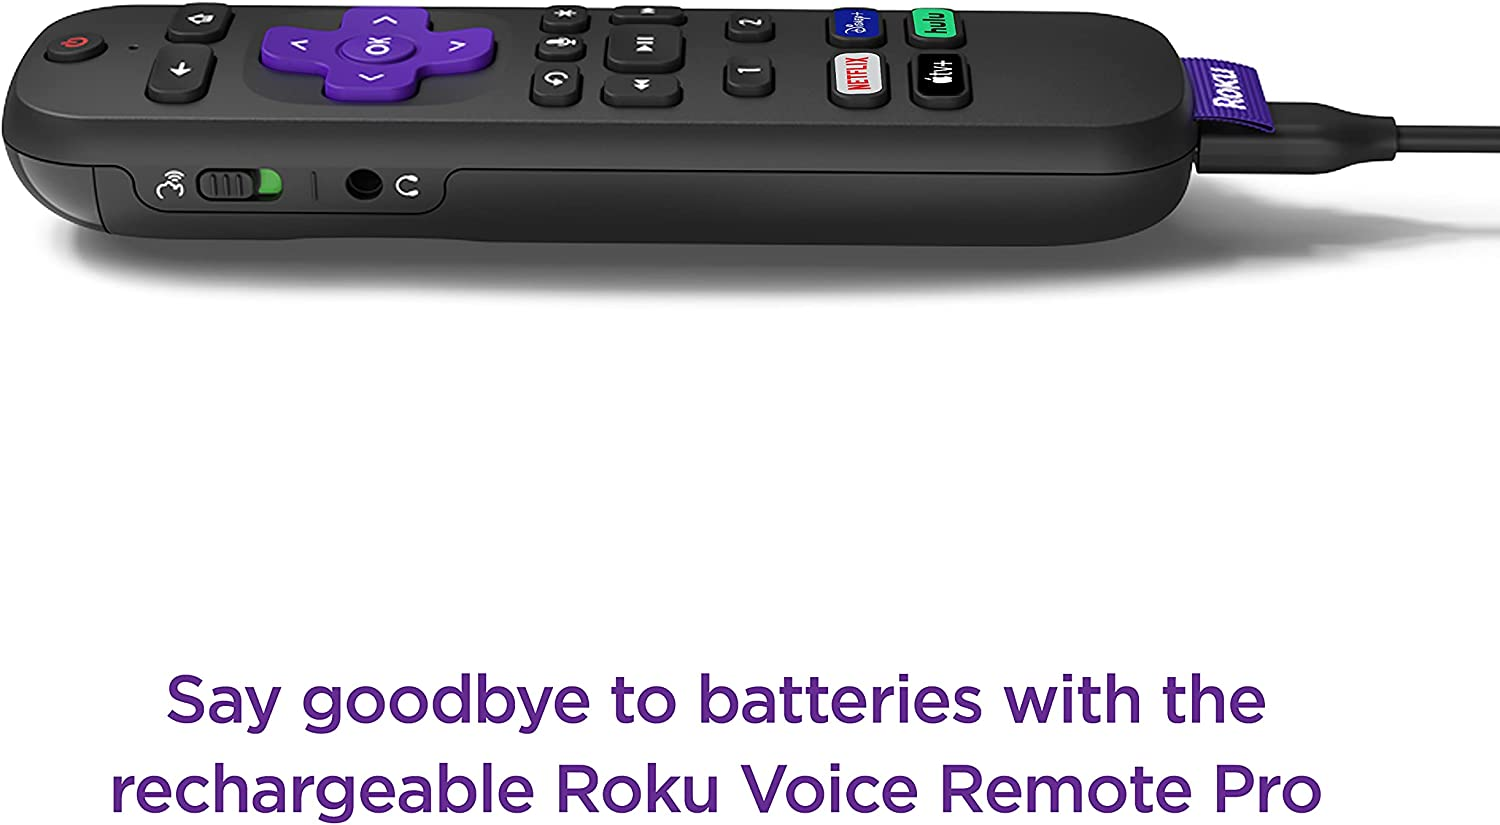 Roku Voice Remote Pro | Rechargeable voice remote with TV controls, lost remote finder, private listening, hands-free voice controls & personal shortcut buttons for Roku players Roku TV, & Roku audio